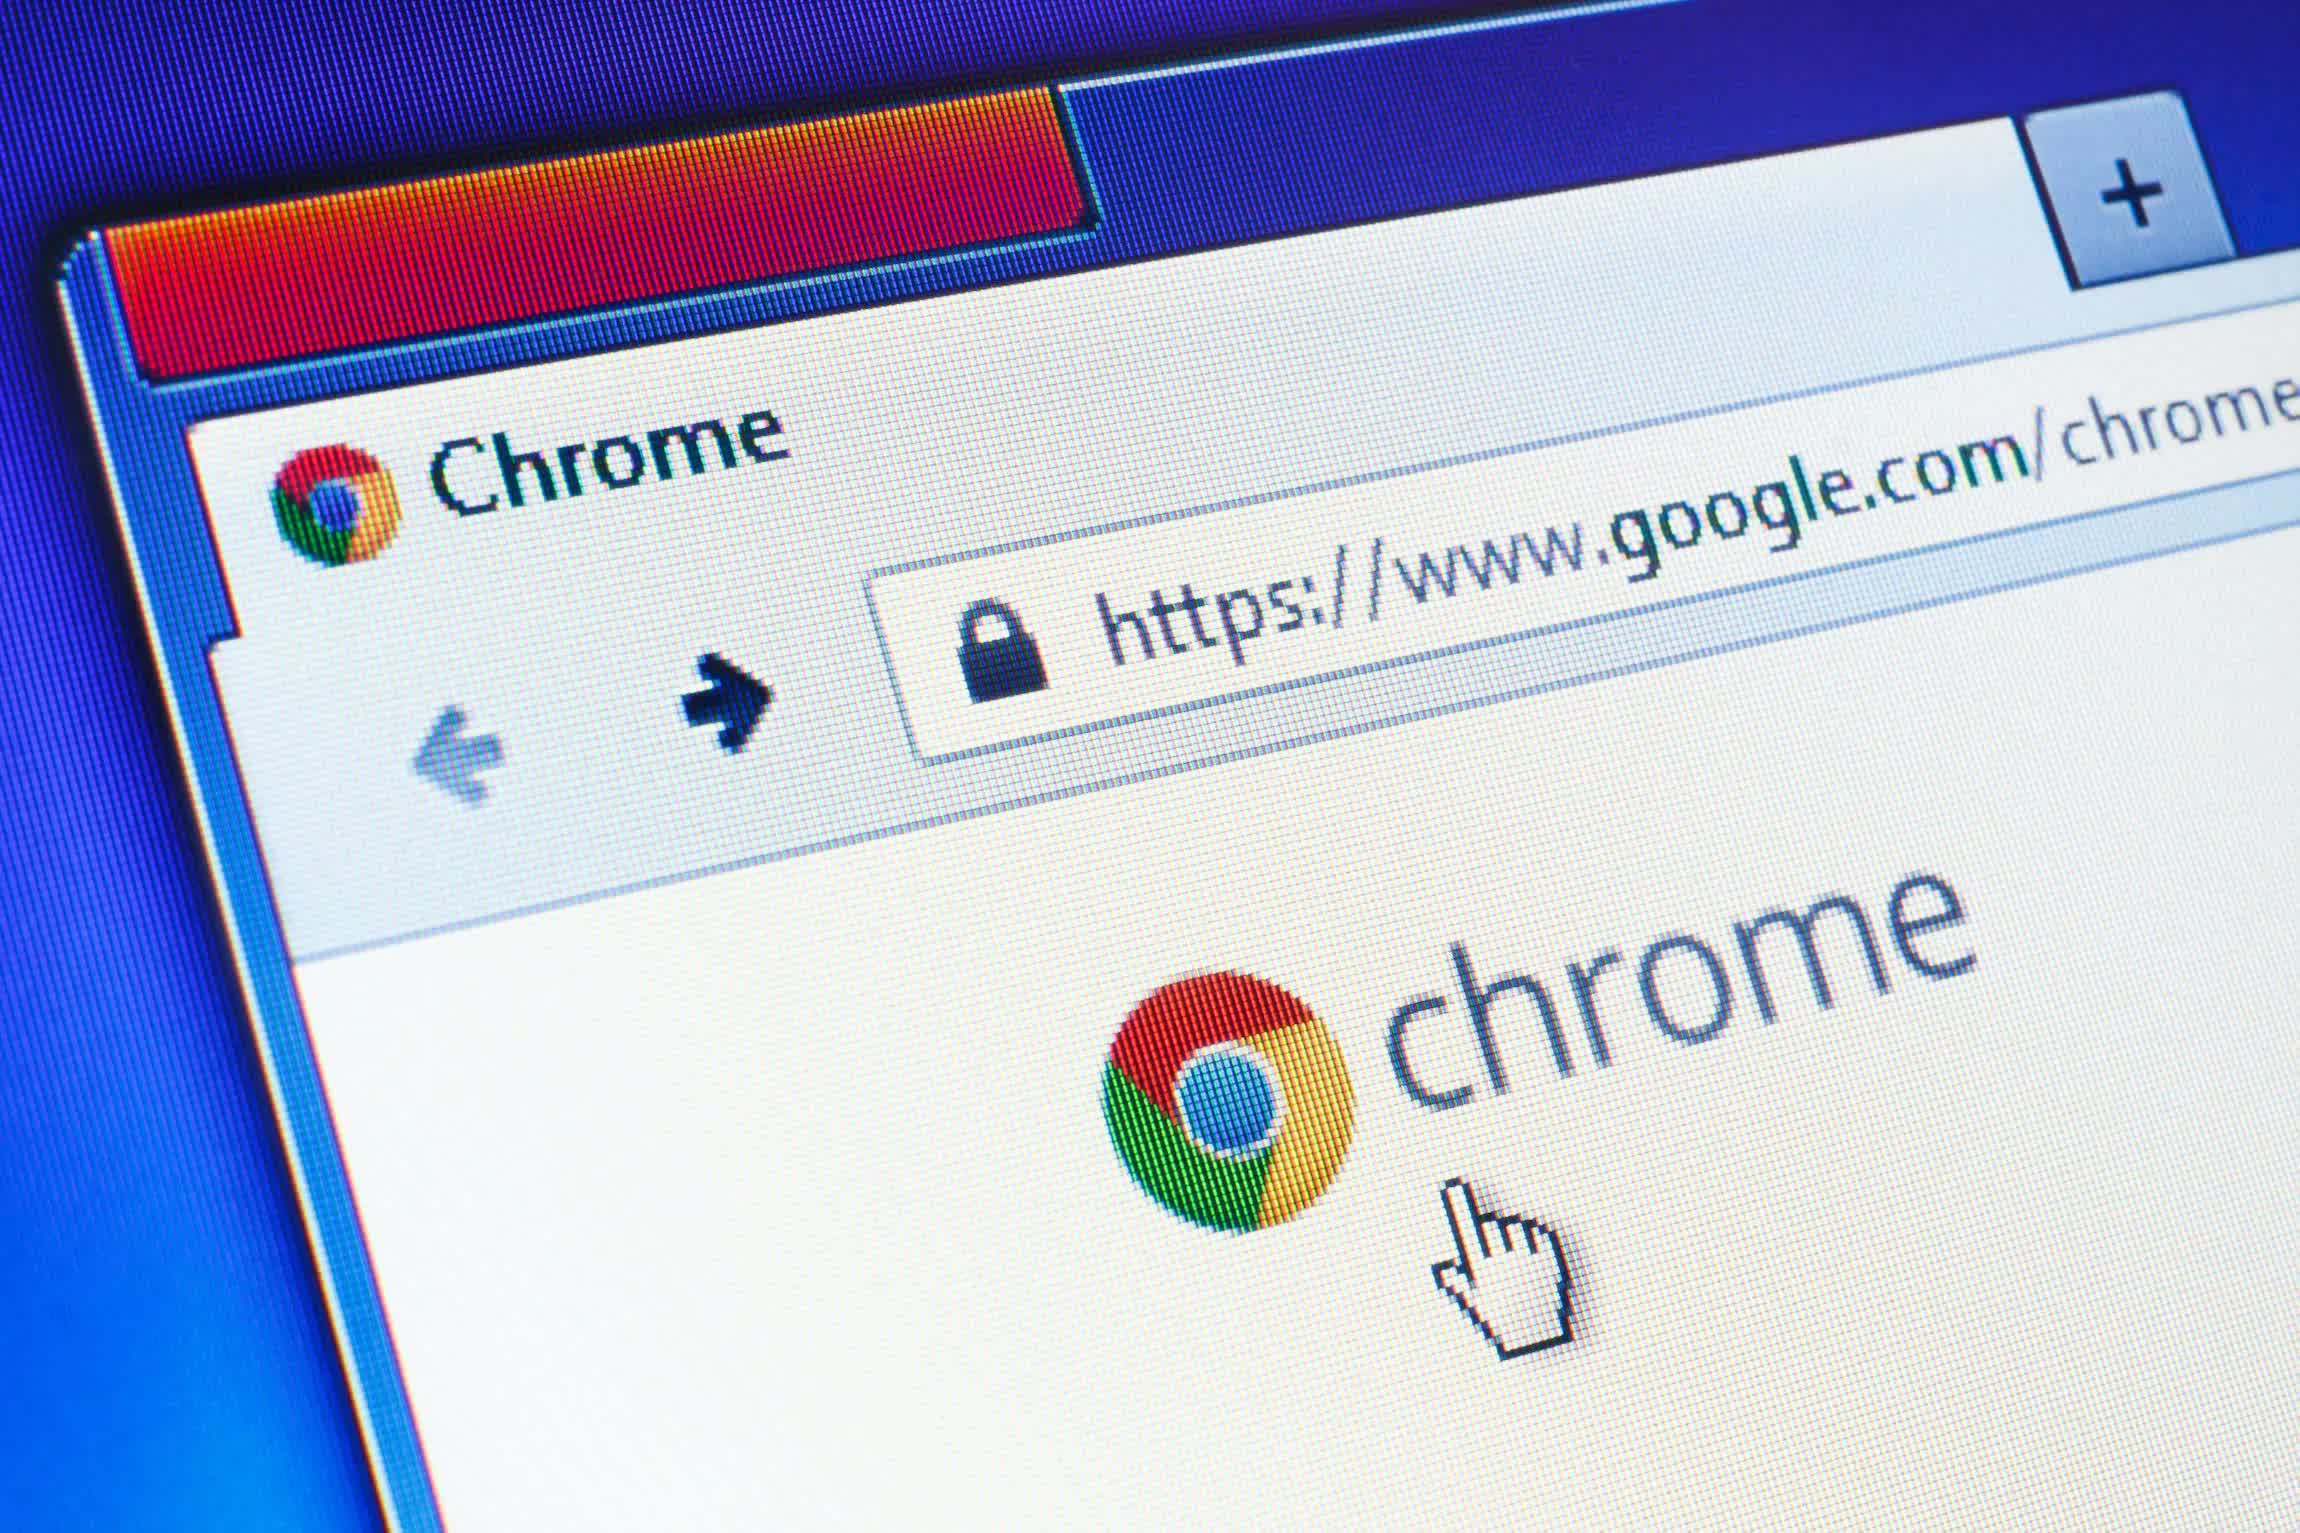 Google is moving to a faster release cycle for Chrome later this year